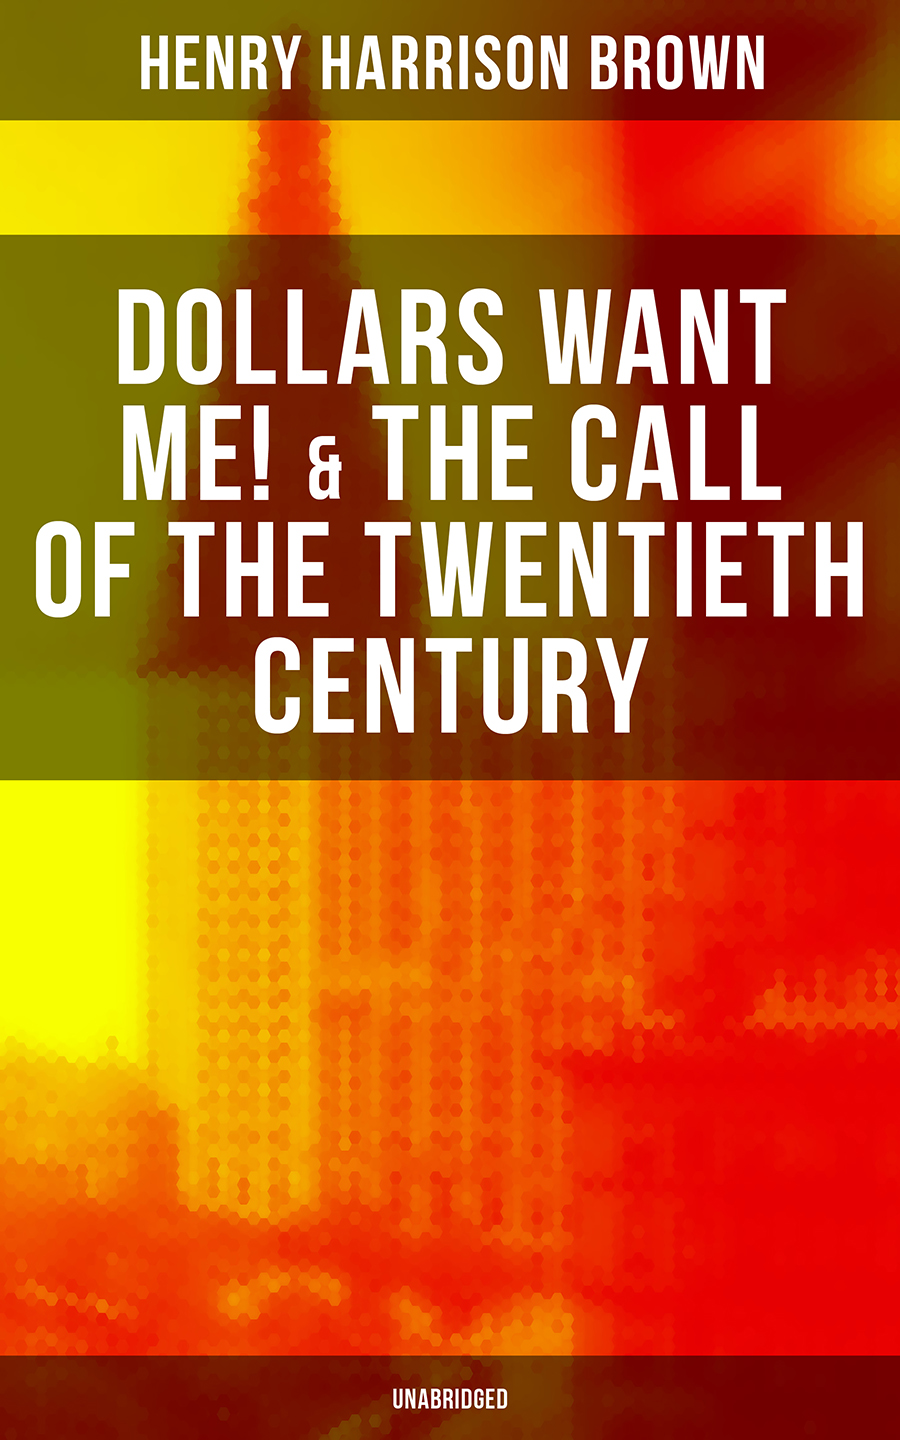 цена Henry Harrison Brown DOLLARS WANT ME! & THE CALL OF THE TWENTIETH CENTURY (Unabridged) онлайн в 2017 году